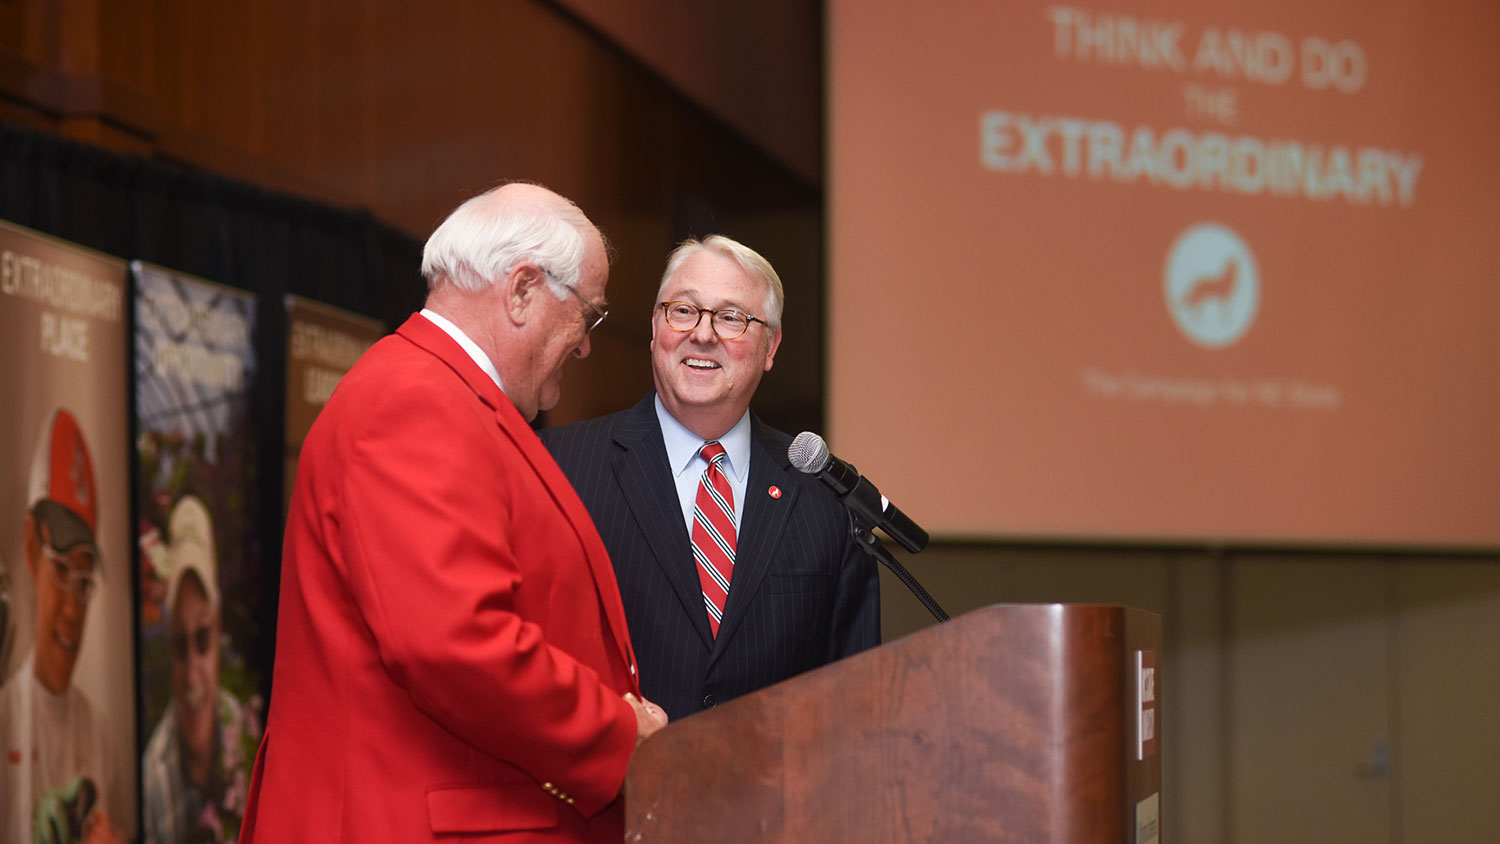 Lawrence Davenport and Chancellor Woodson at the CALS campaign kickoff event